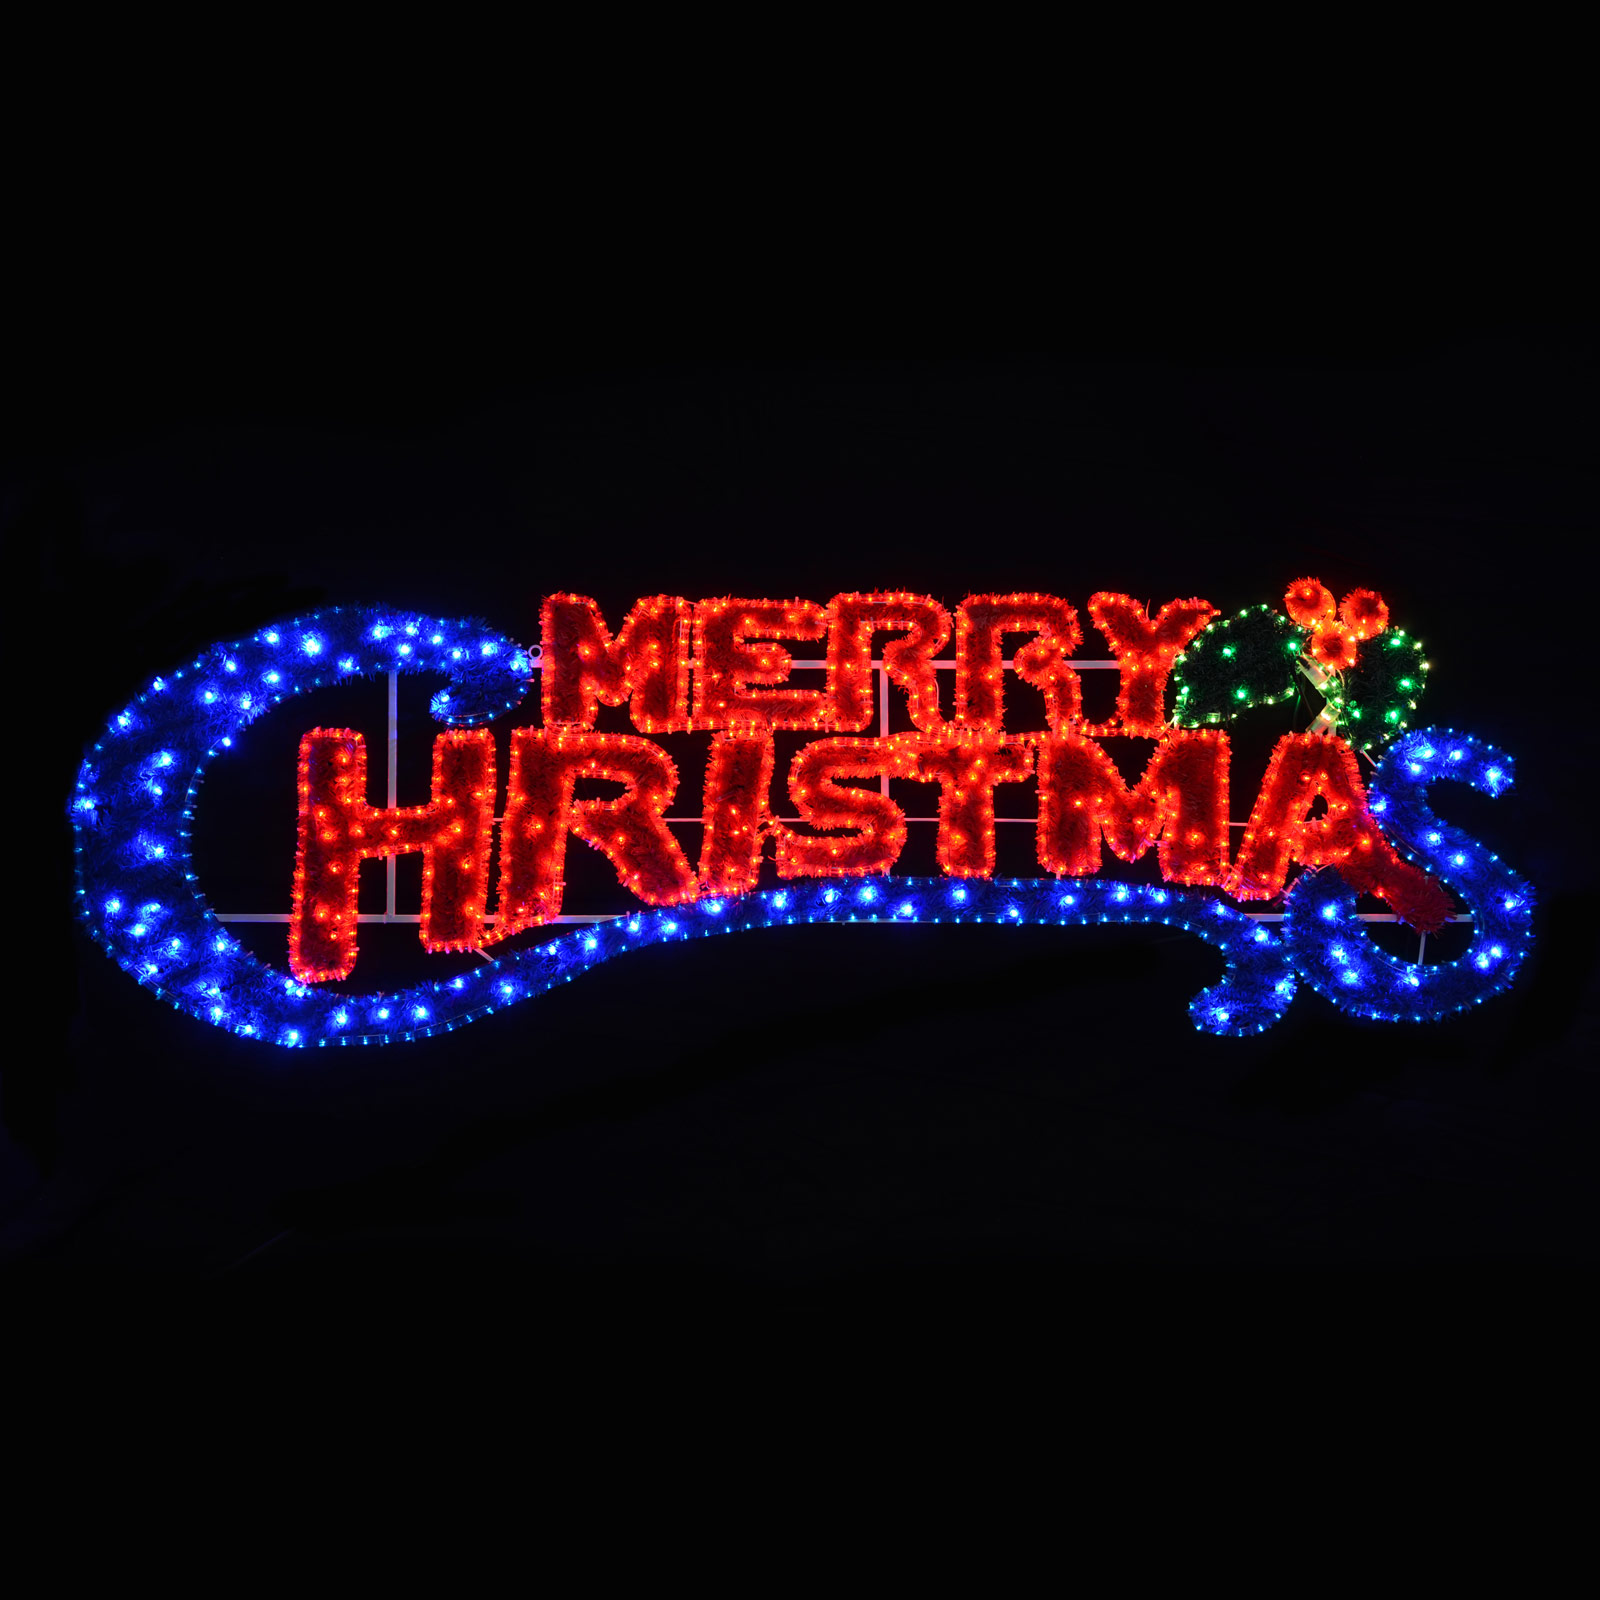 LED Rope Flashing Blue amp Red Light Merry Christmas Sign